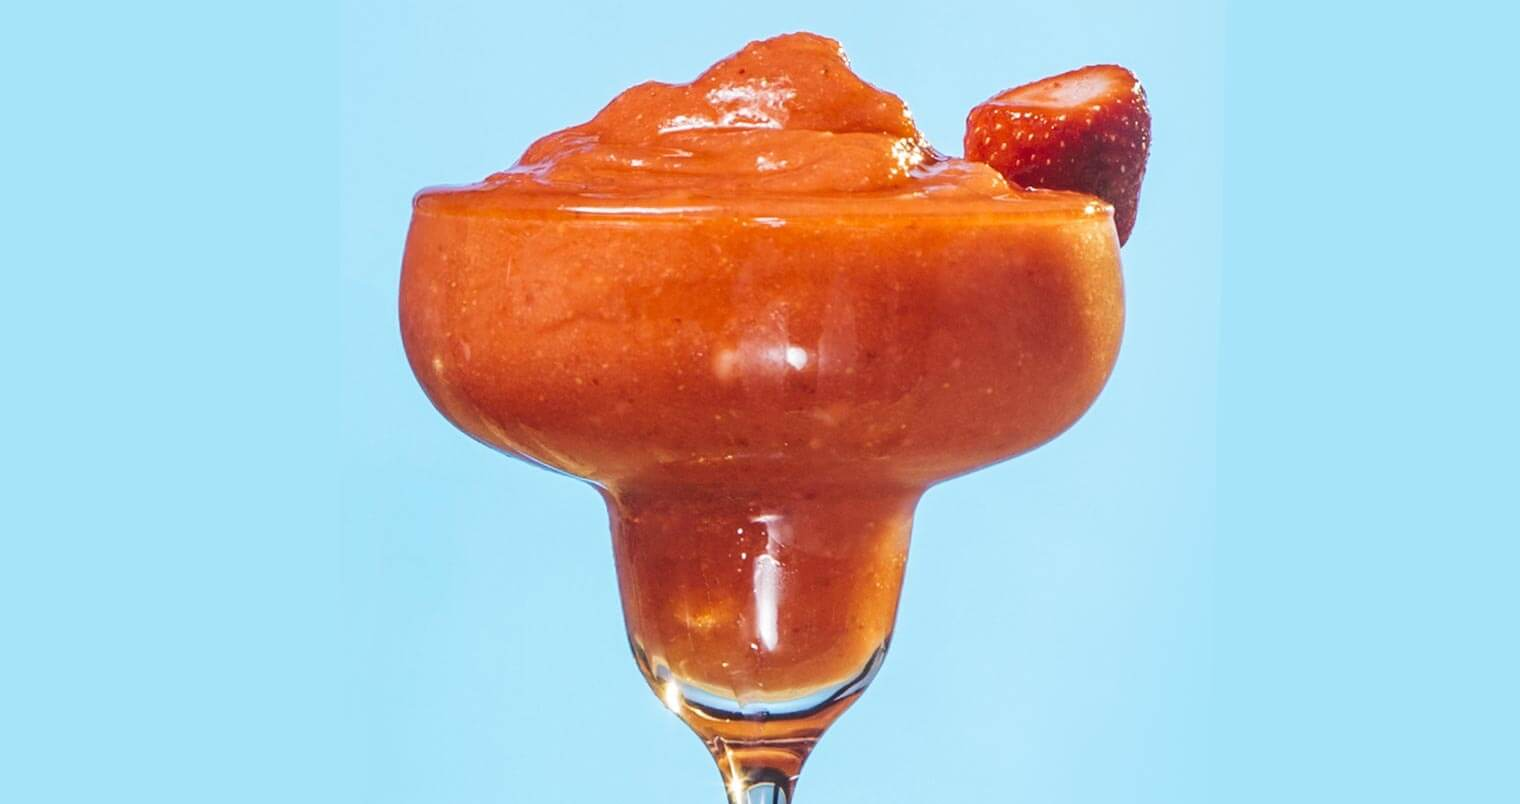 Agave Loco Strawberry LocoRita for Cinco de Mayo, featured image